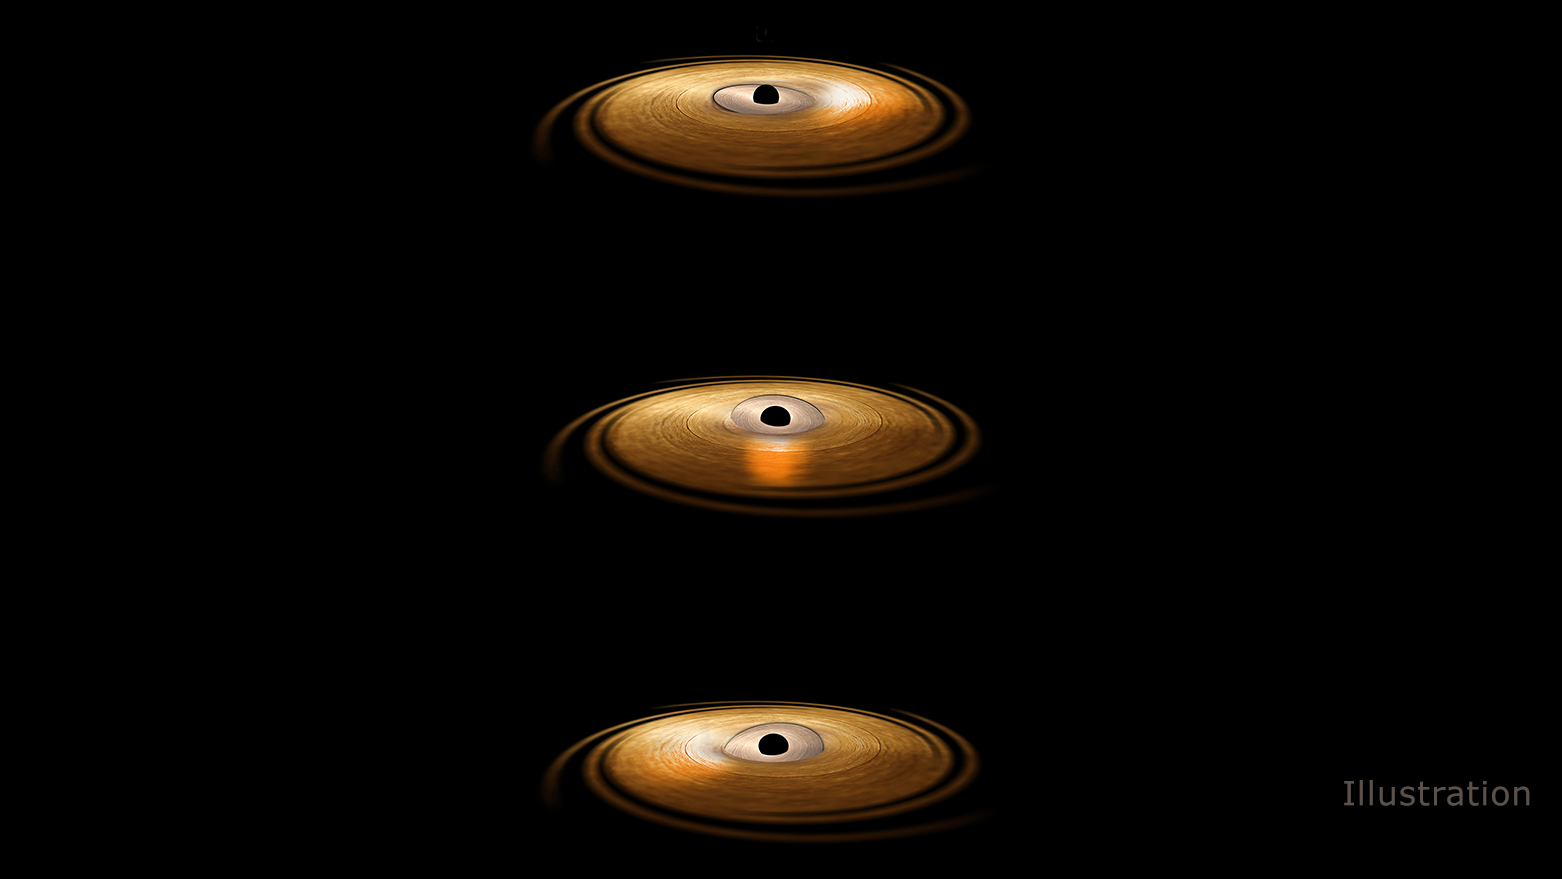 Astronomers observe a wobble in a black hole's accretion disc.